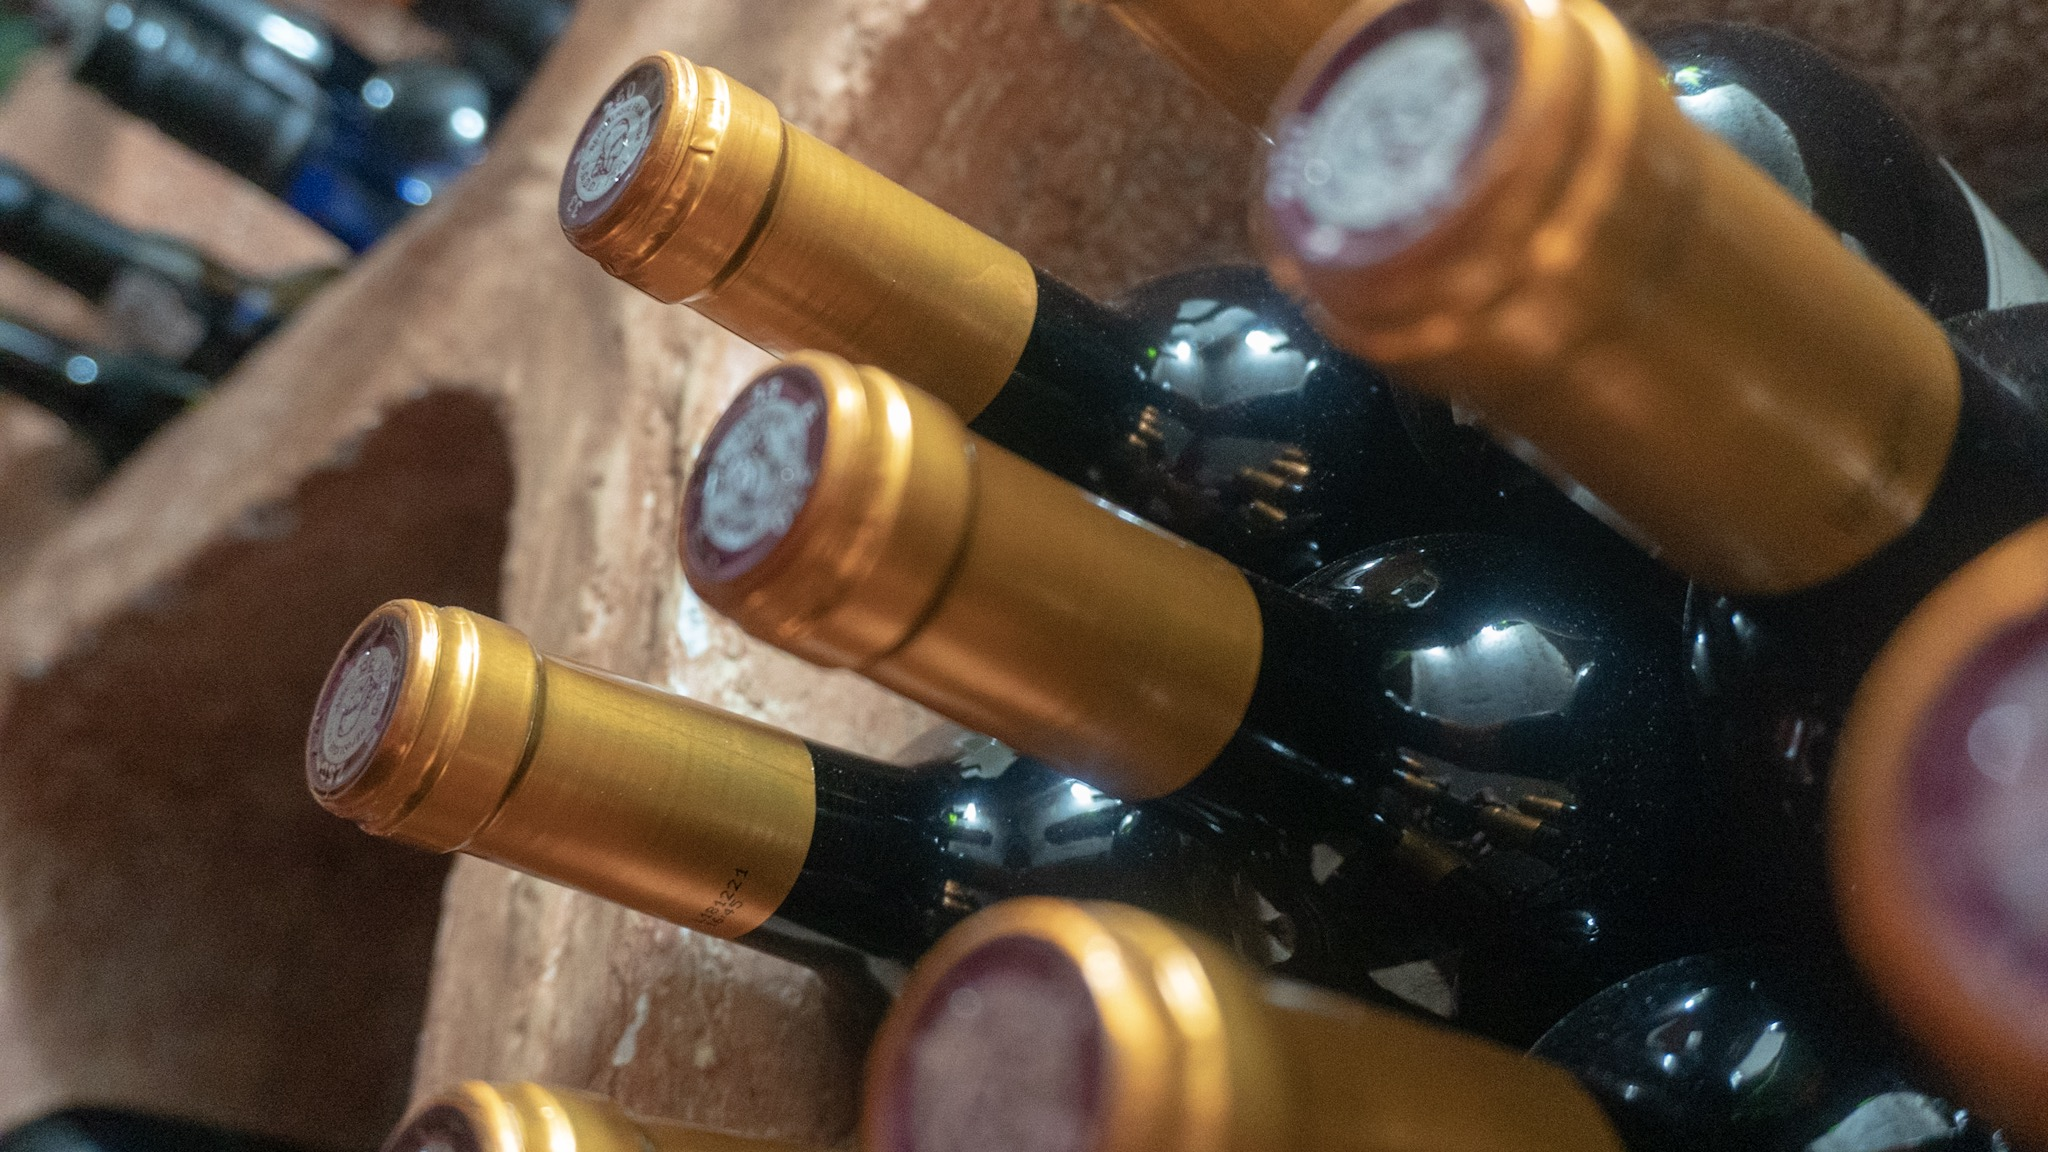 European Wines Hand Picked to complement the Food